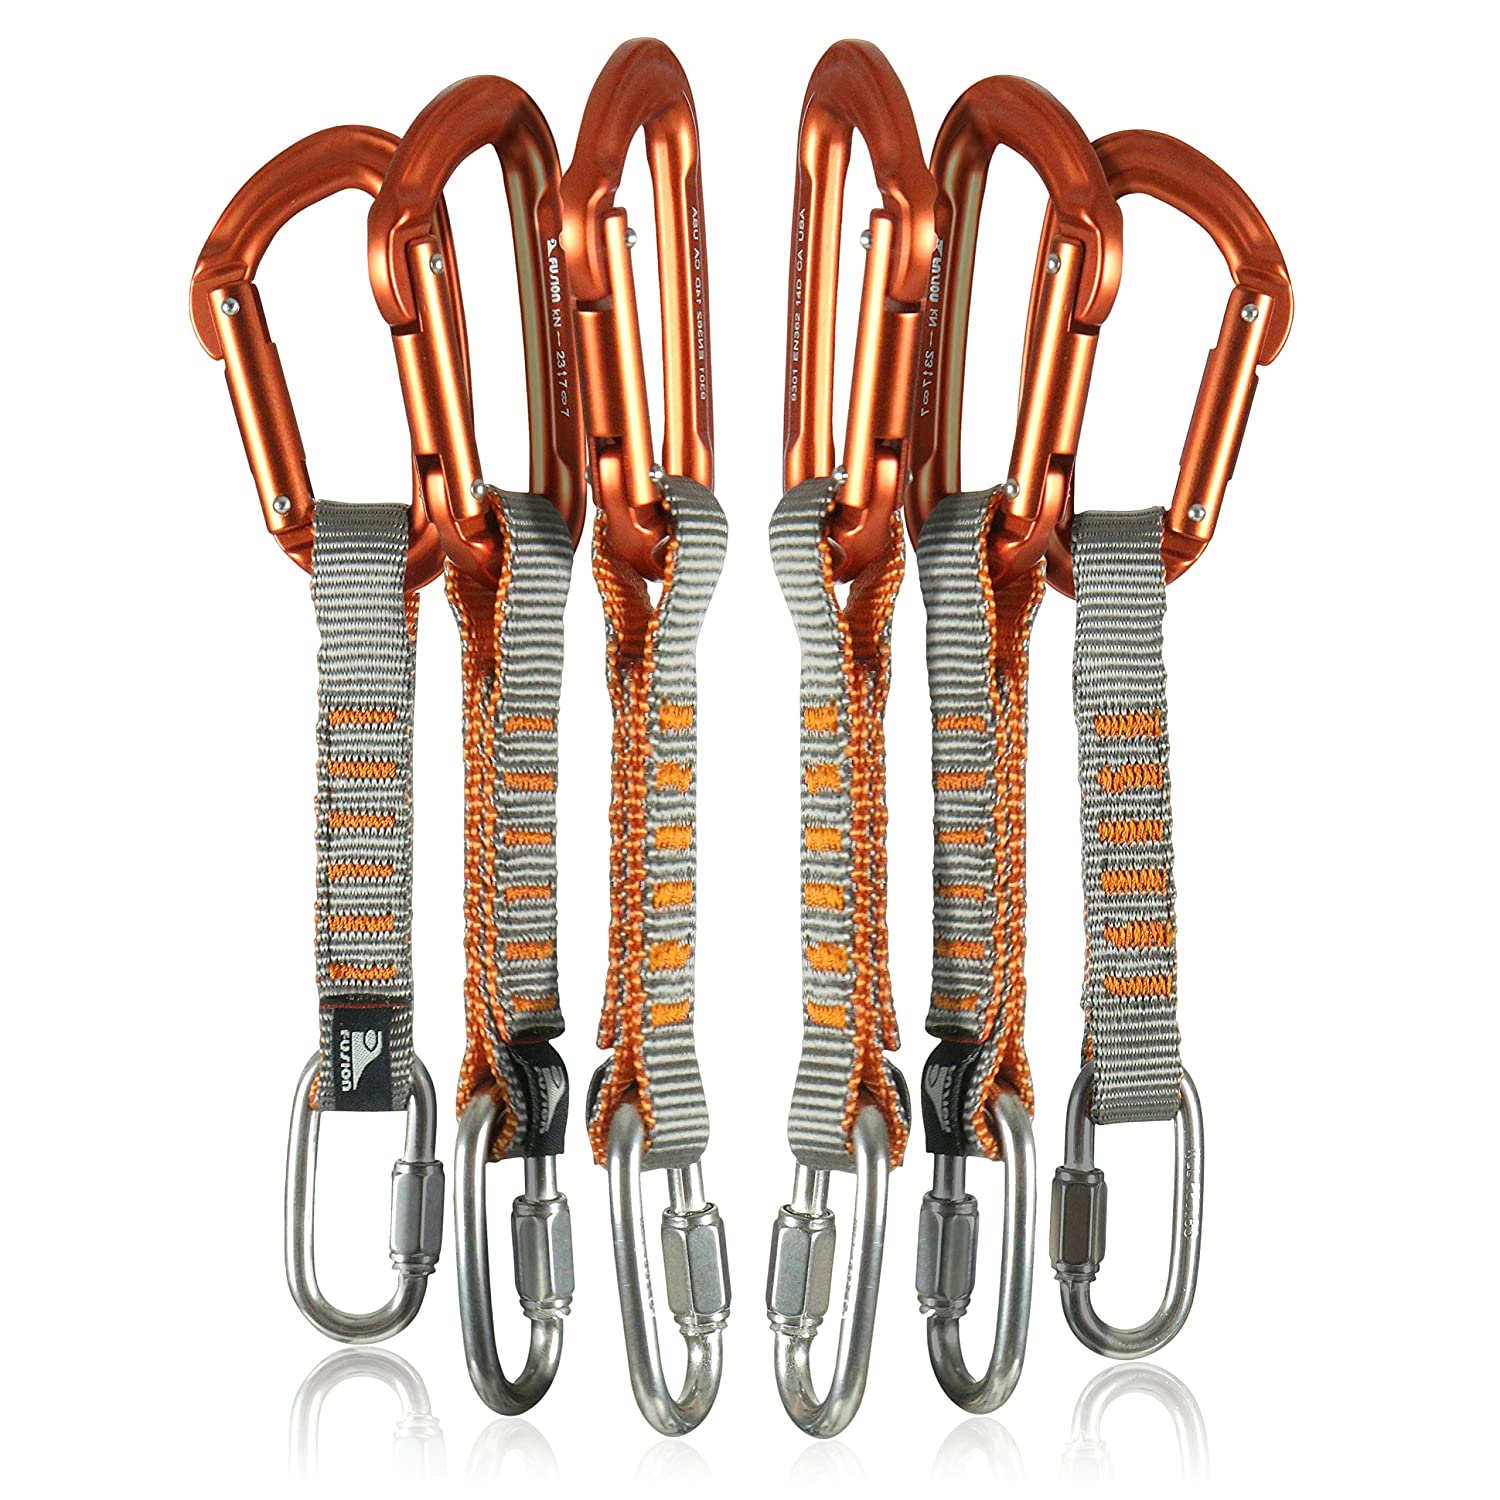 Fusion Climb 6-Pack 11cm Quickdraw Set with 1/4 Stainless Steel Quick Link/Contigua Orange Straight Gate Carabiner QDS11-2502-SS-SIL-9301-ST-ORG